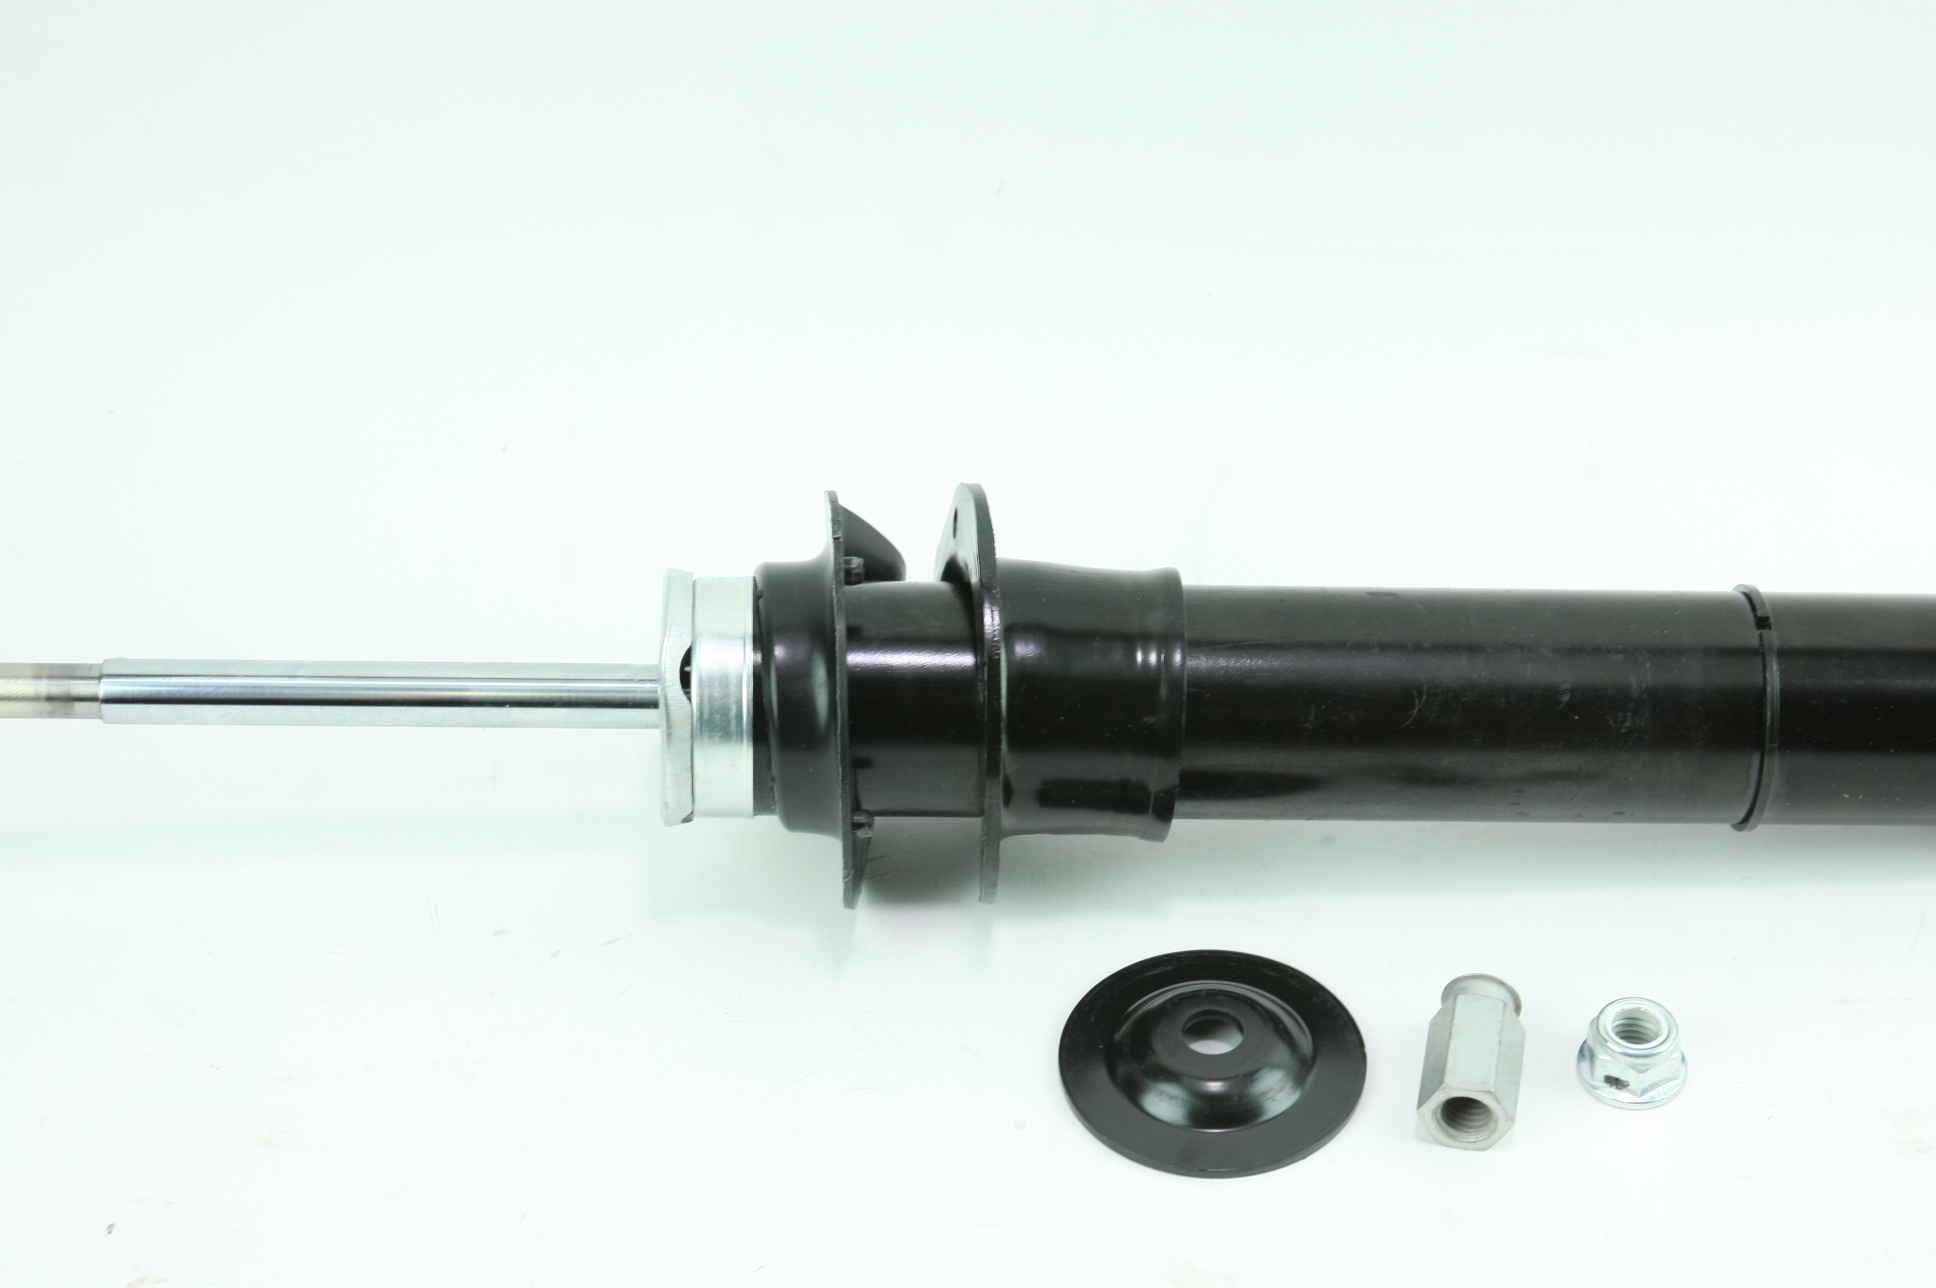 New OEM 580-436 GM 19300028 Shock Absorber Kit Front LH/RH 07-10 Cadillac STS - image 5